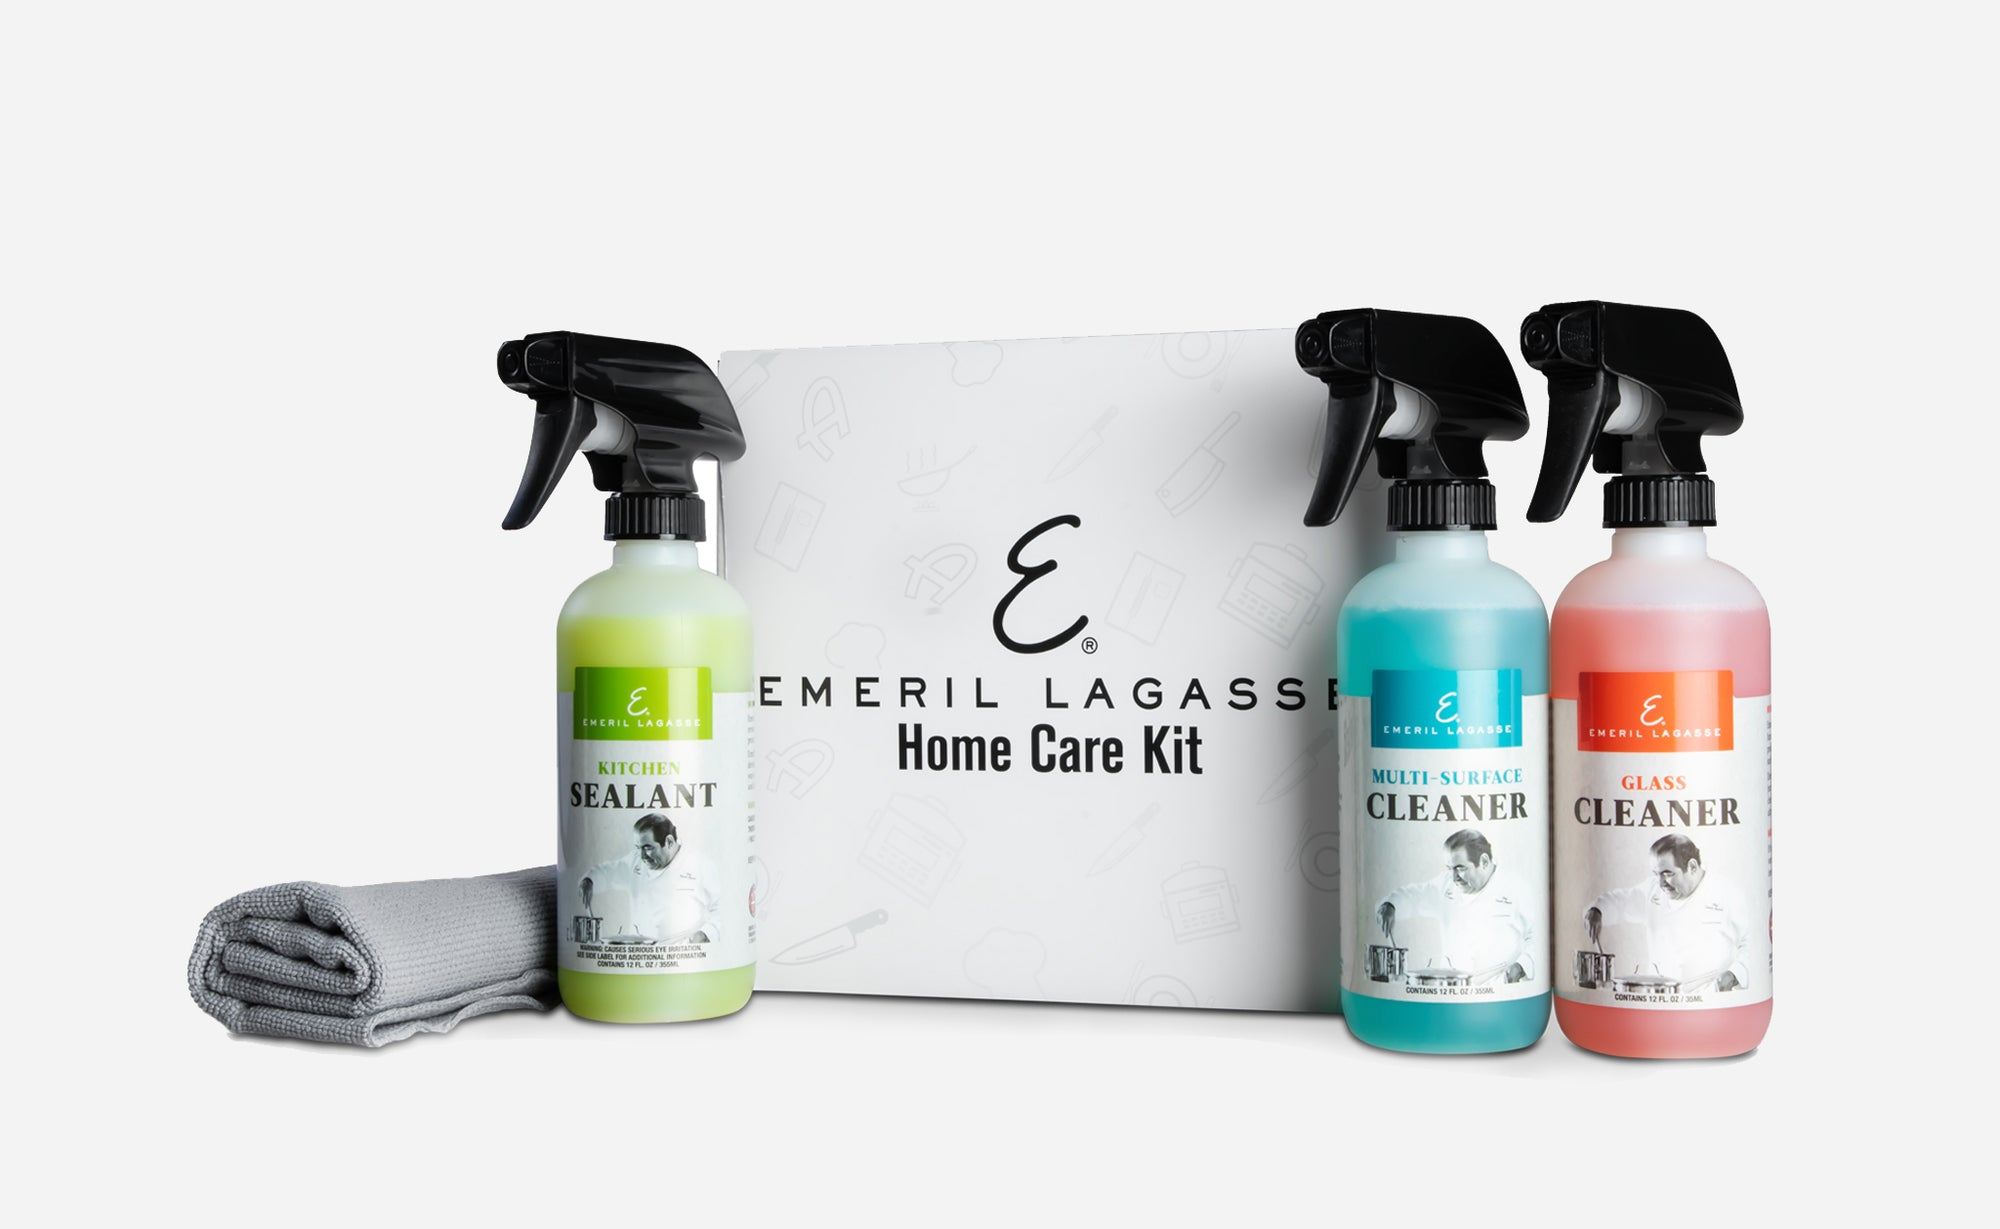 Adam's x Emeril Lagasse Home Care Kit